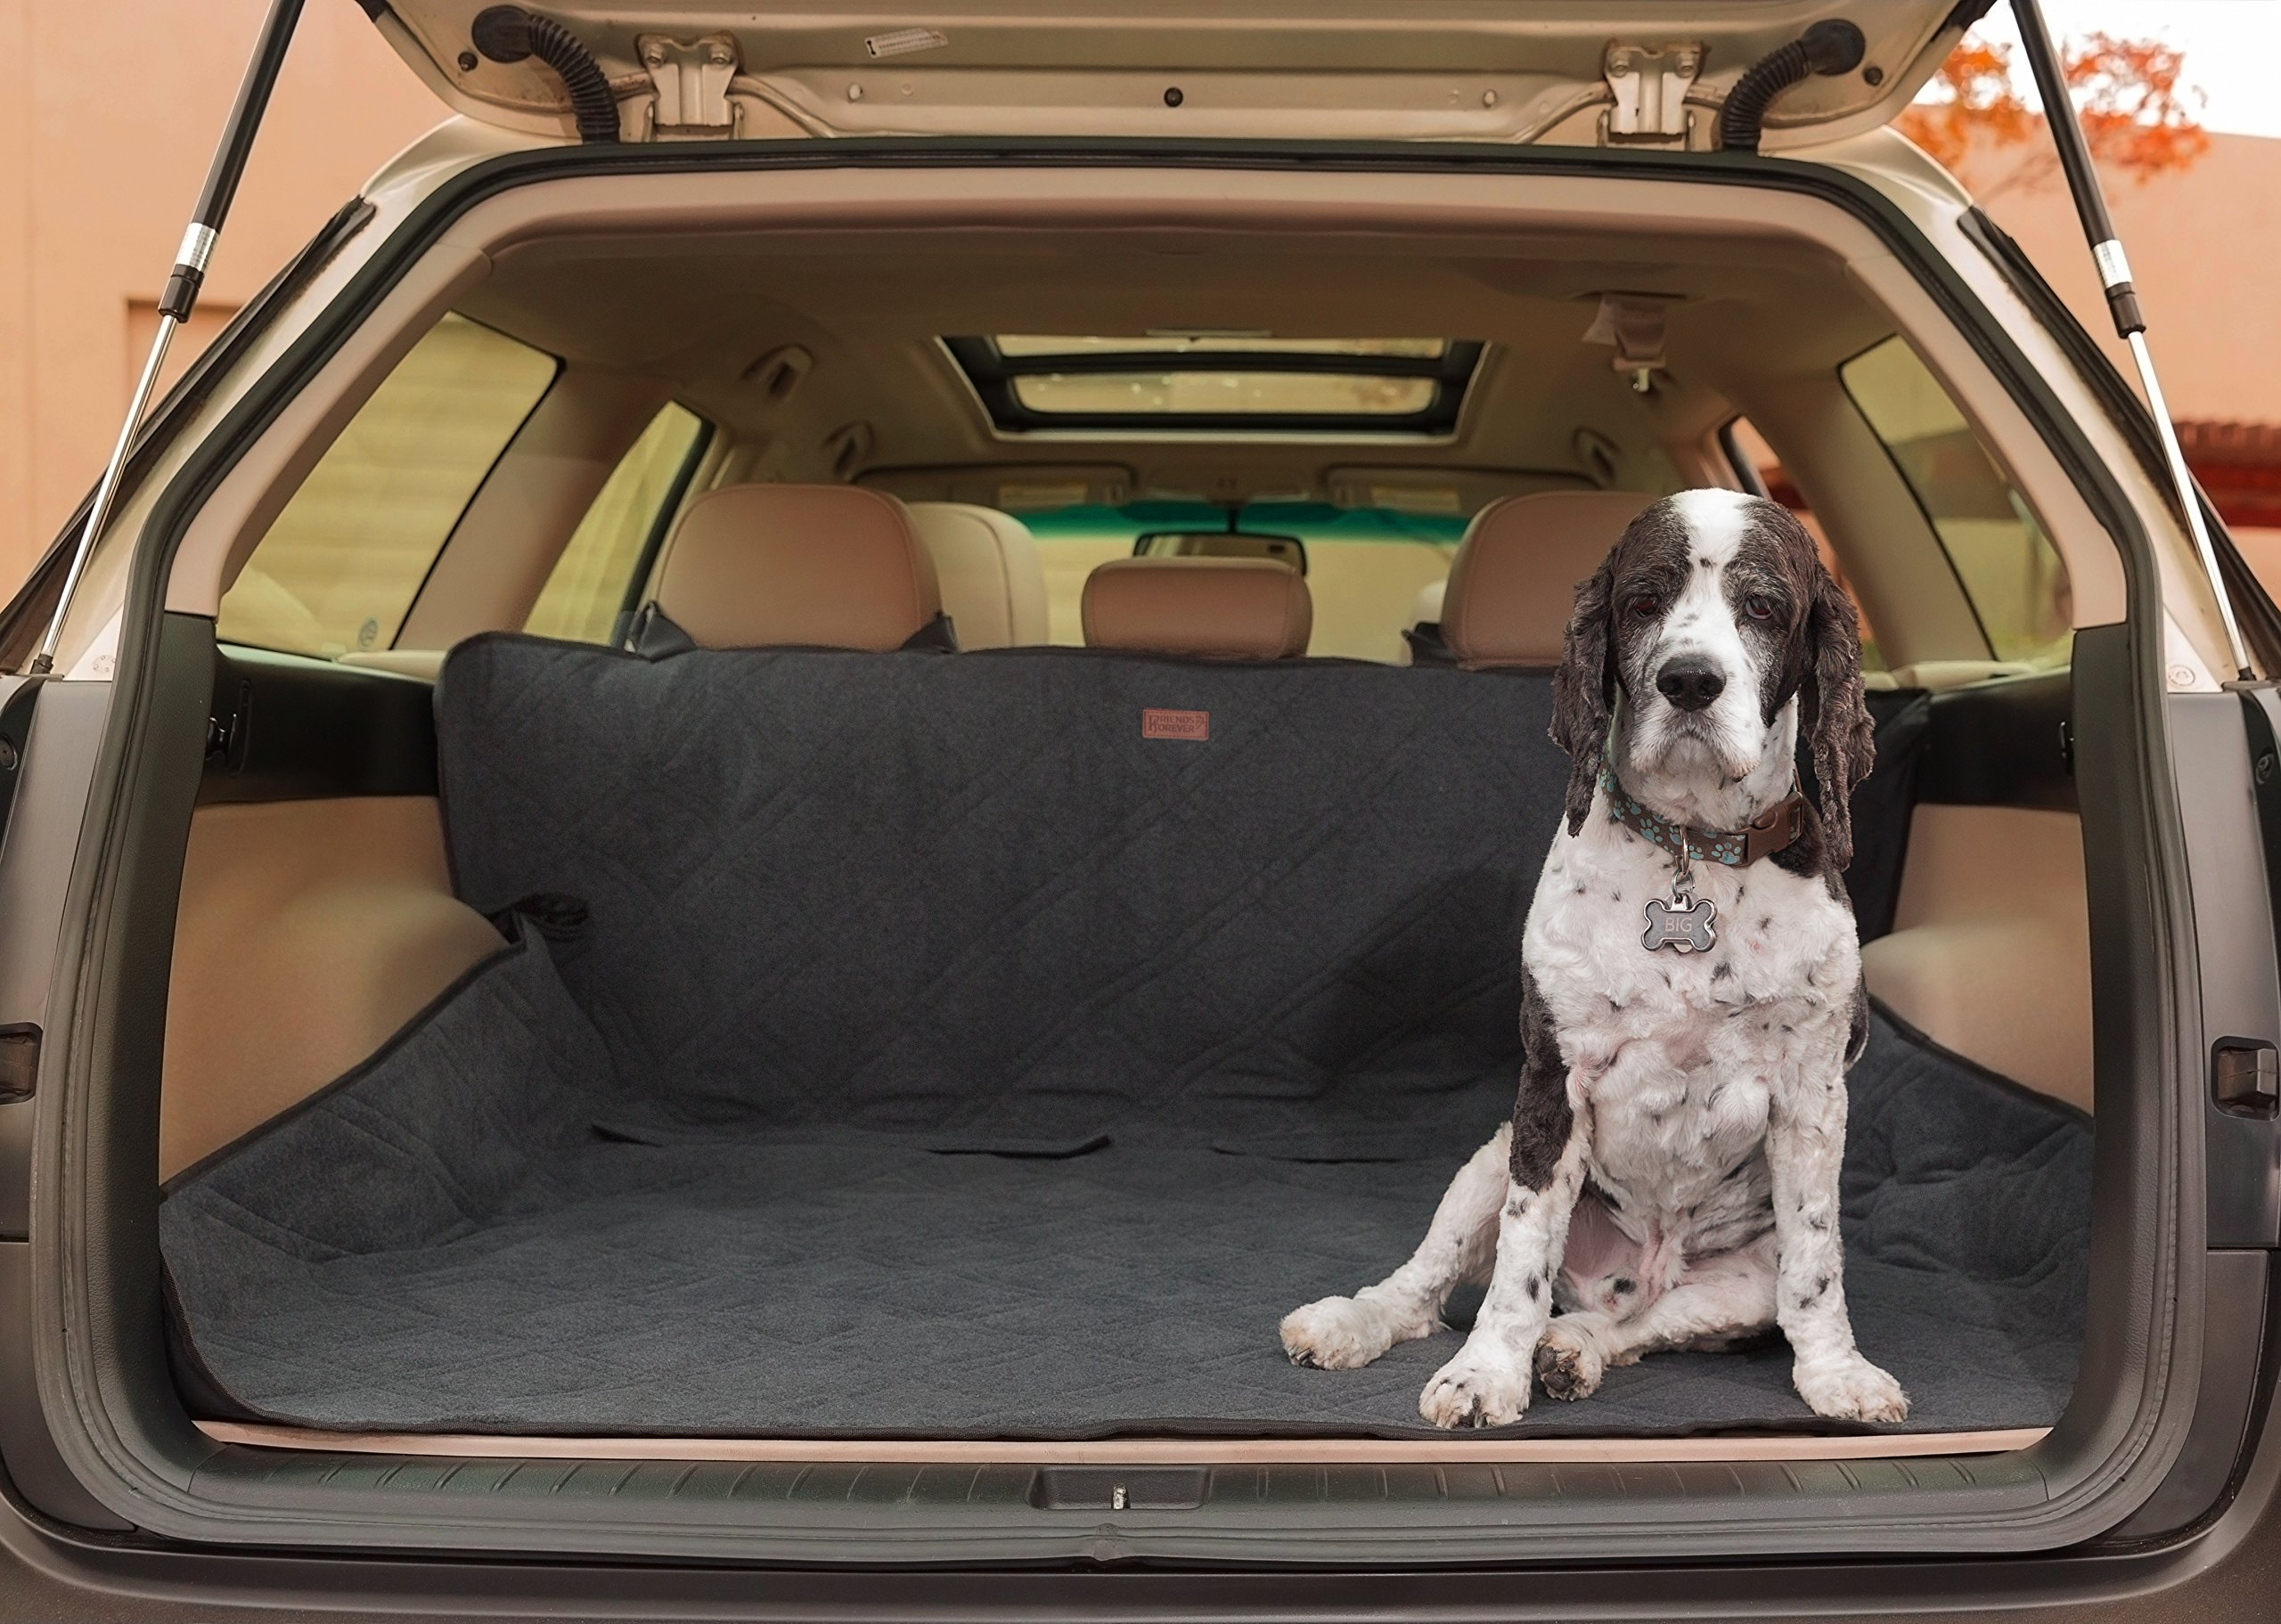 Friends Forever Premium Dog Trunk Cover, Dog Hammock for Back Seat - Reversible Dog Seat Cover for Back Seat with Seat Anchor, Water-Proof & Non-Slip, Black